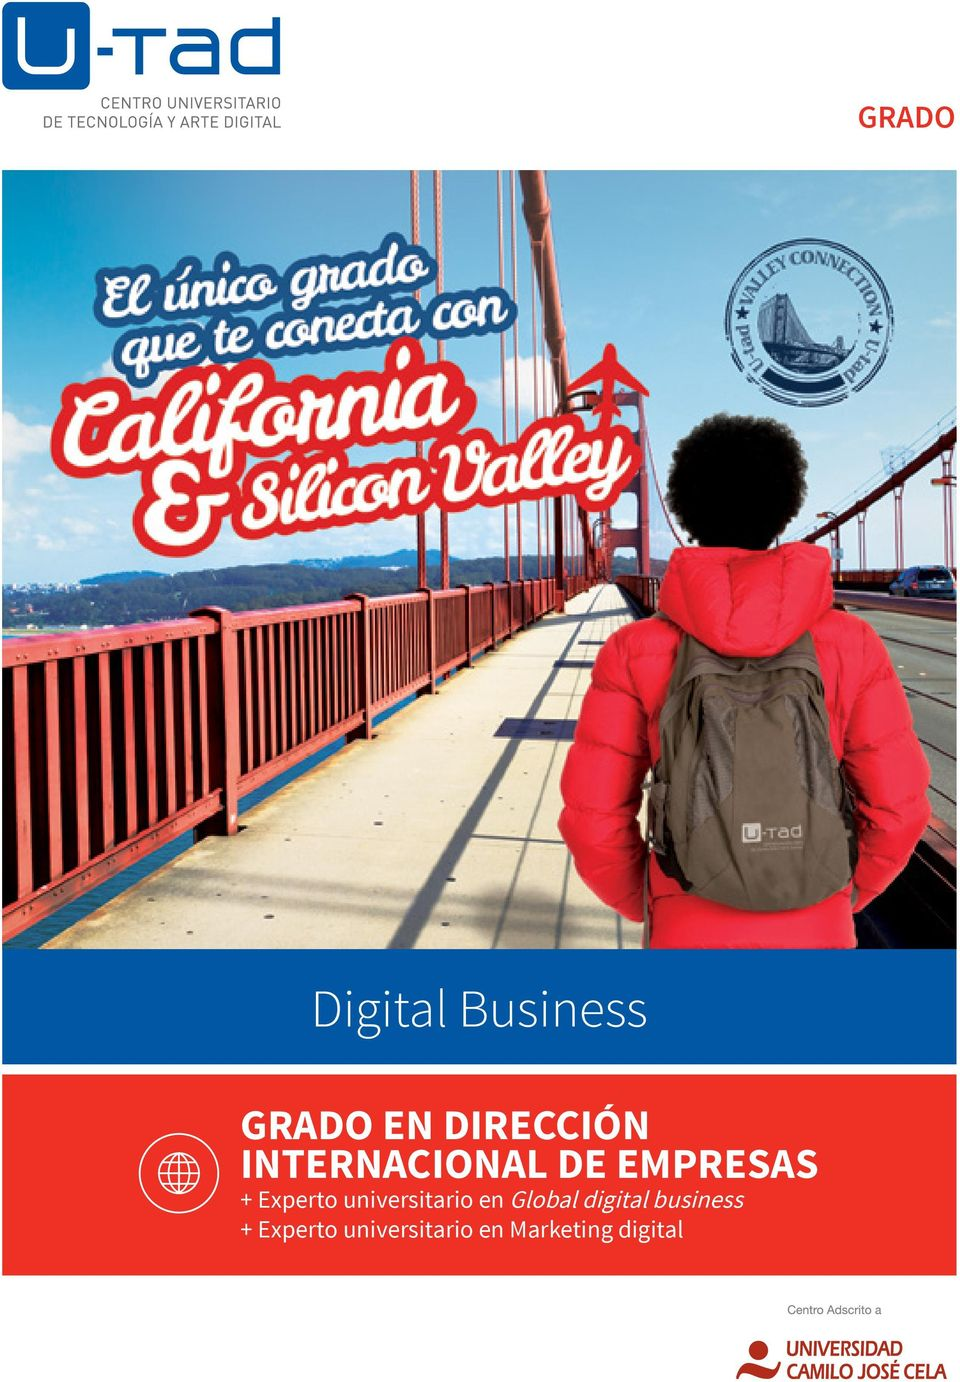 Experto universitario en Global digital